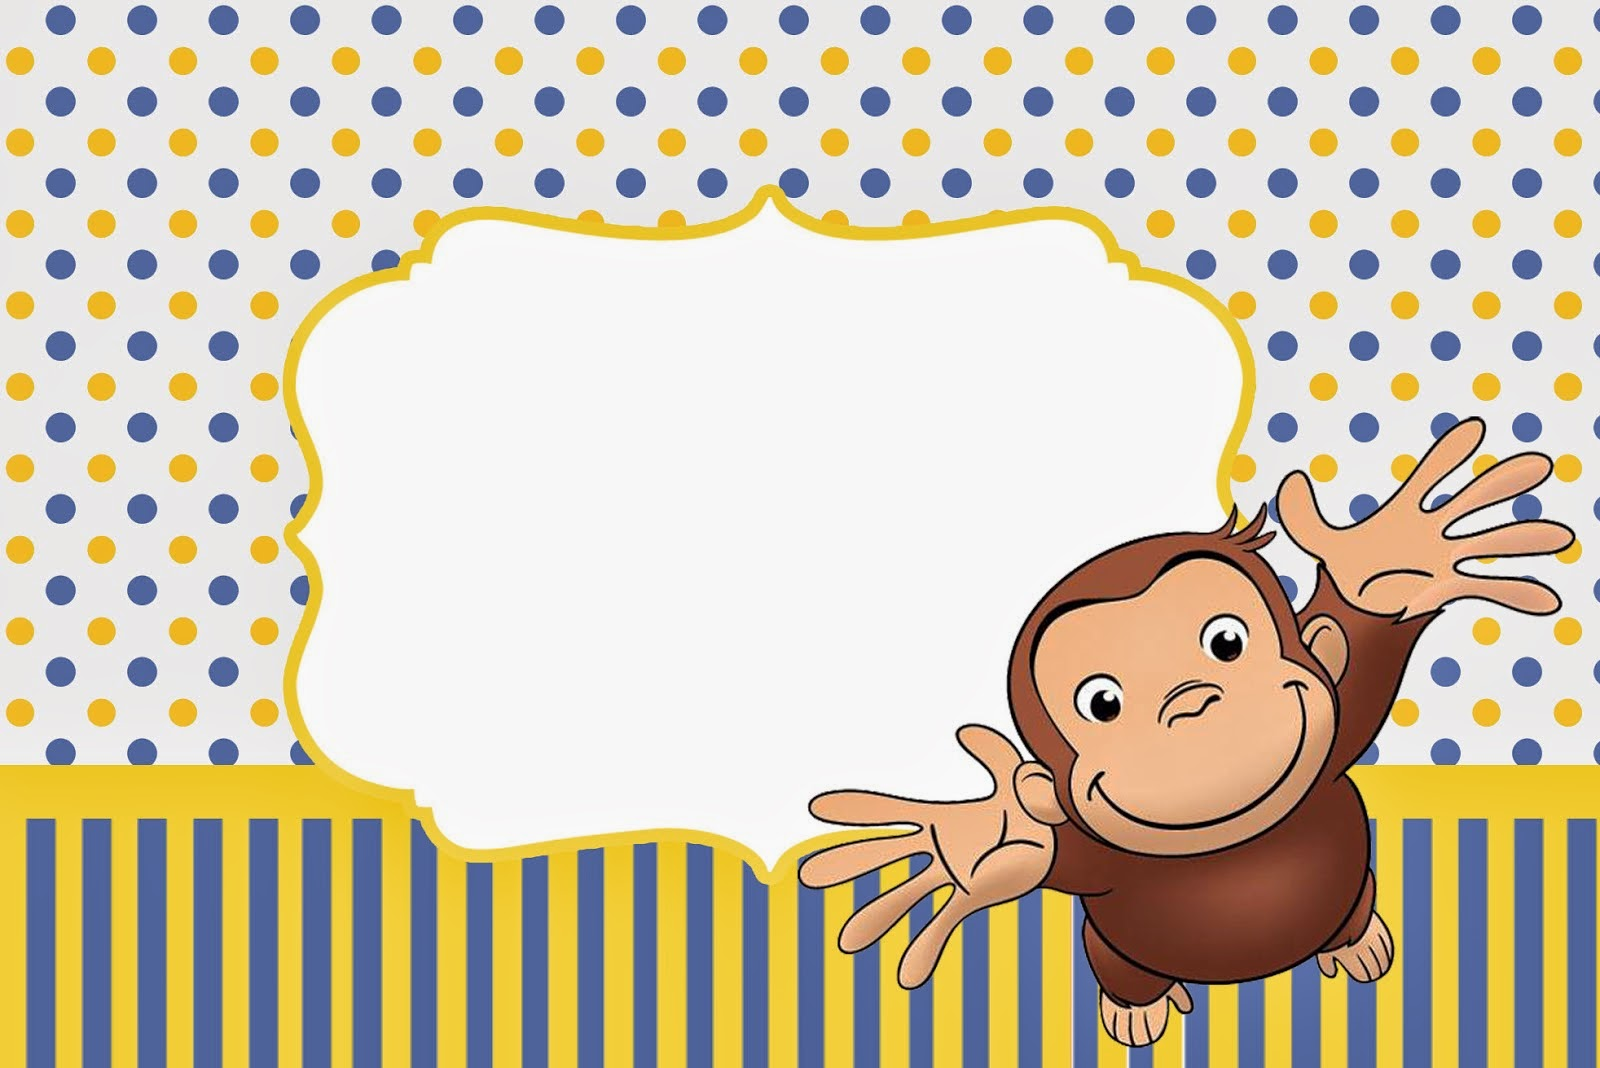 Curious George Free Printable Invitations. | Is it for PARTIES? Is it FREE? Is it CUTE? Has ...